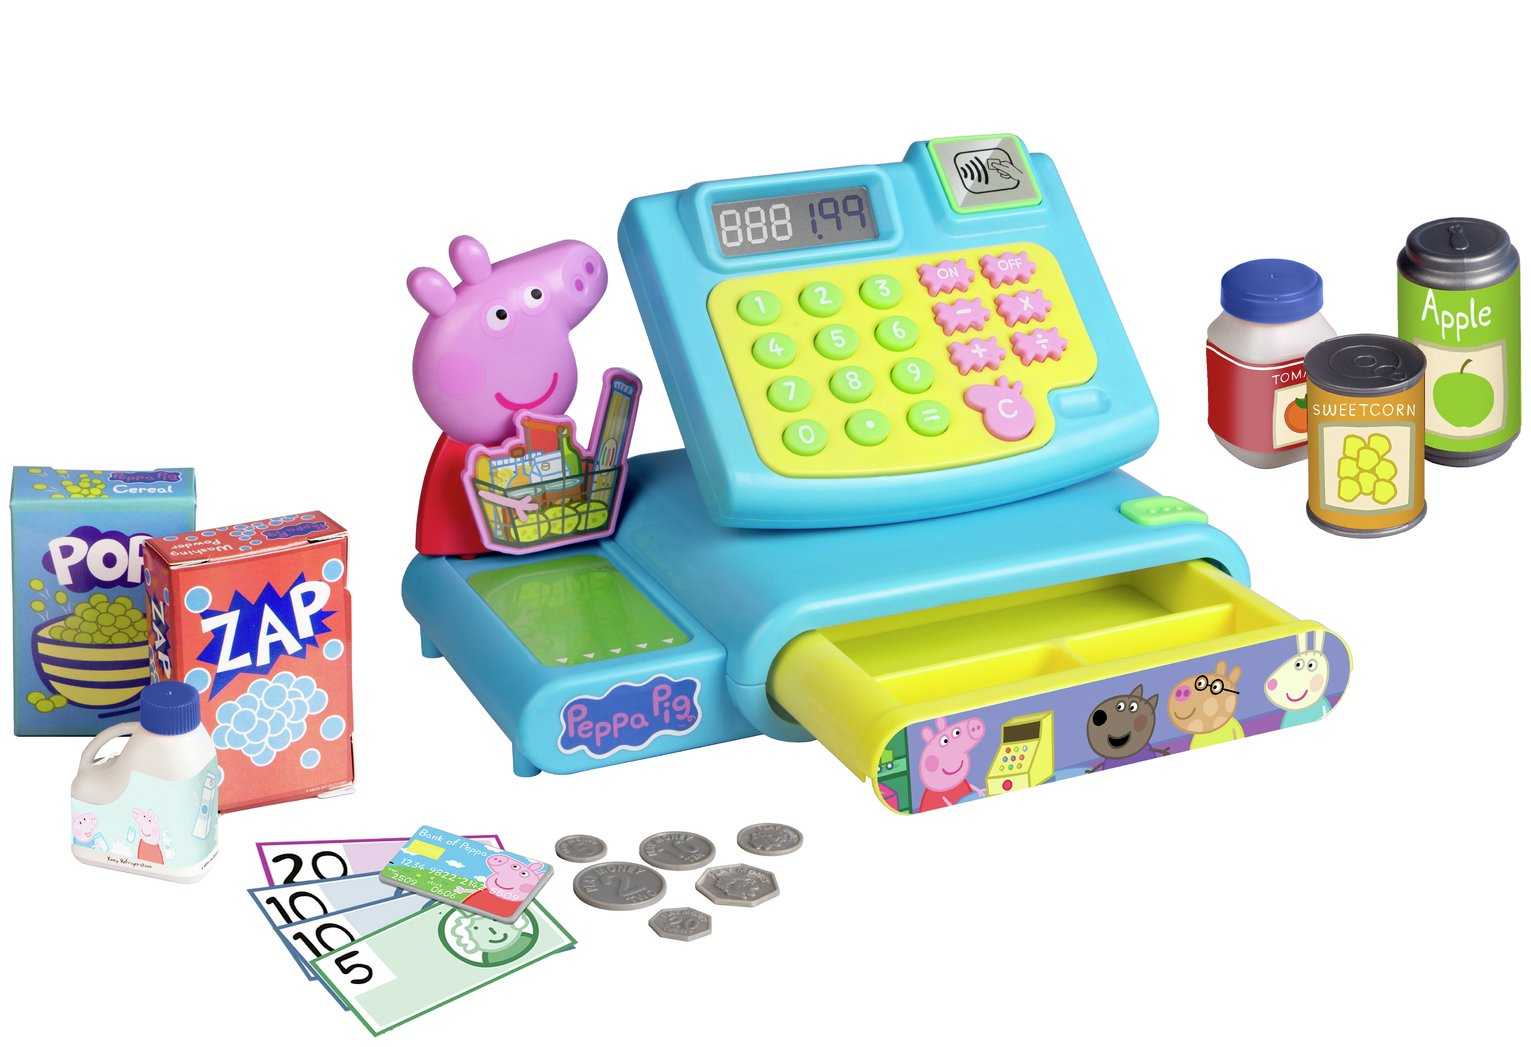 Peppa Pig Cash Register from Peppa pig